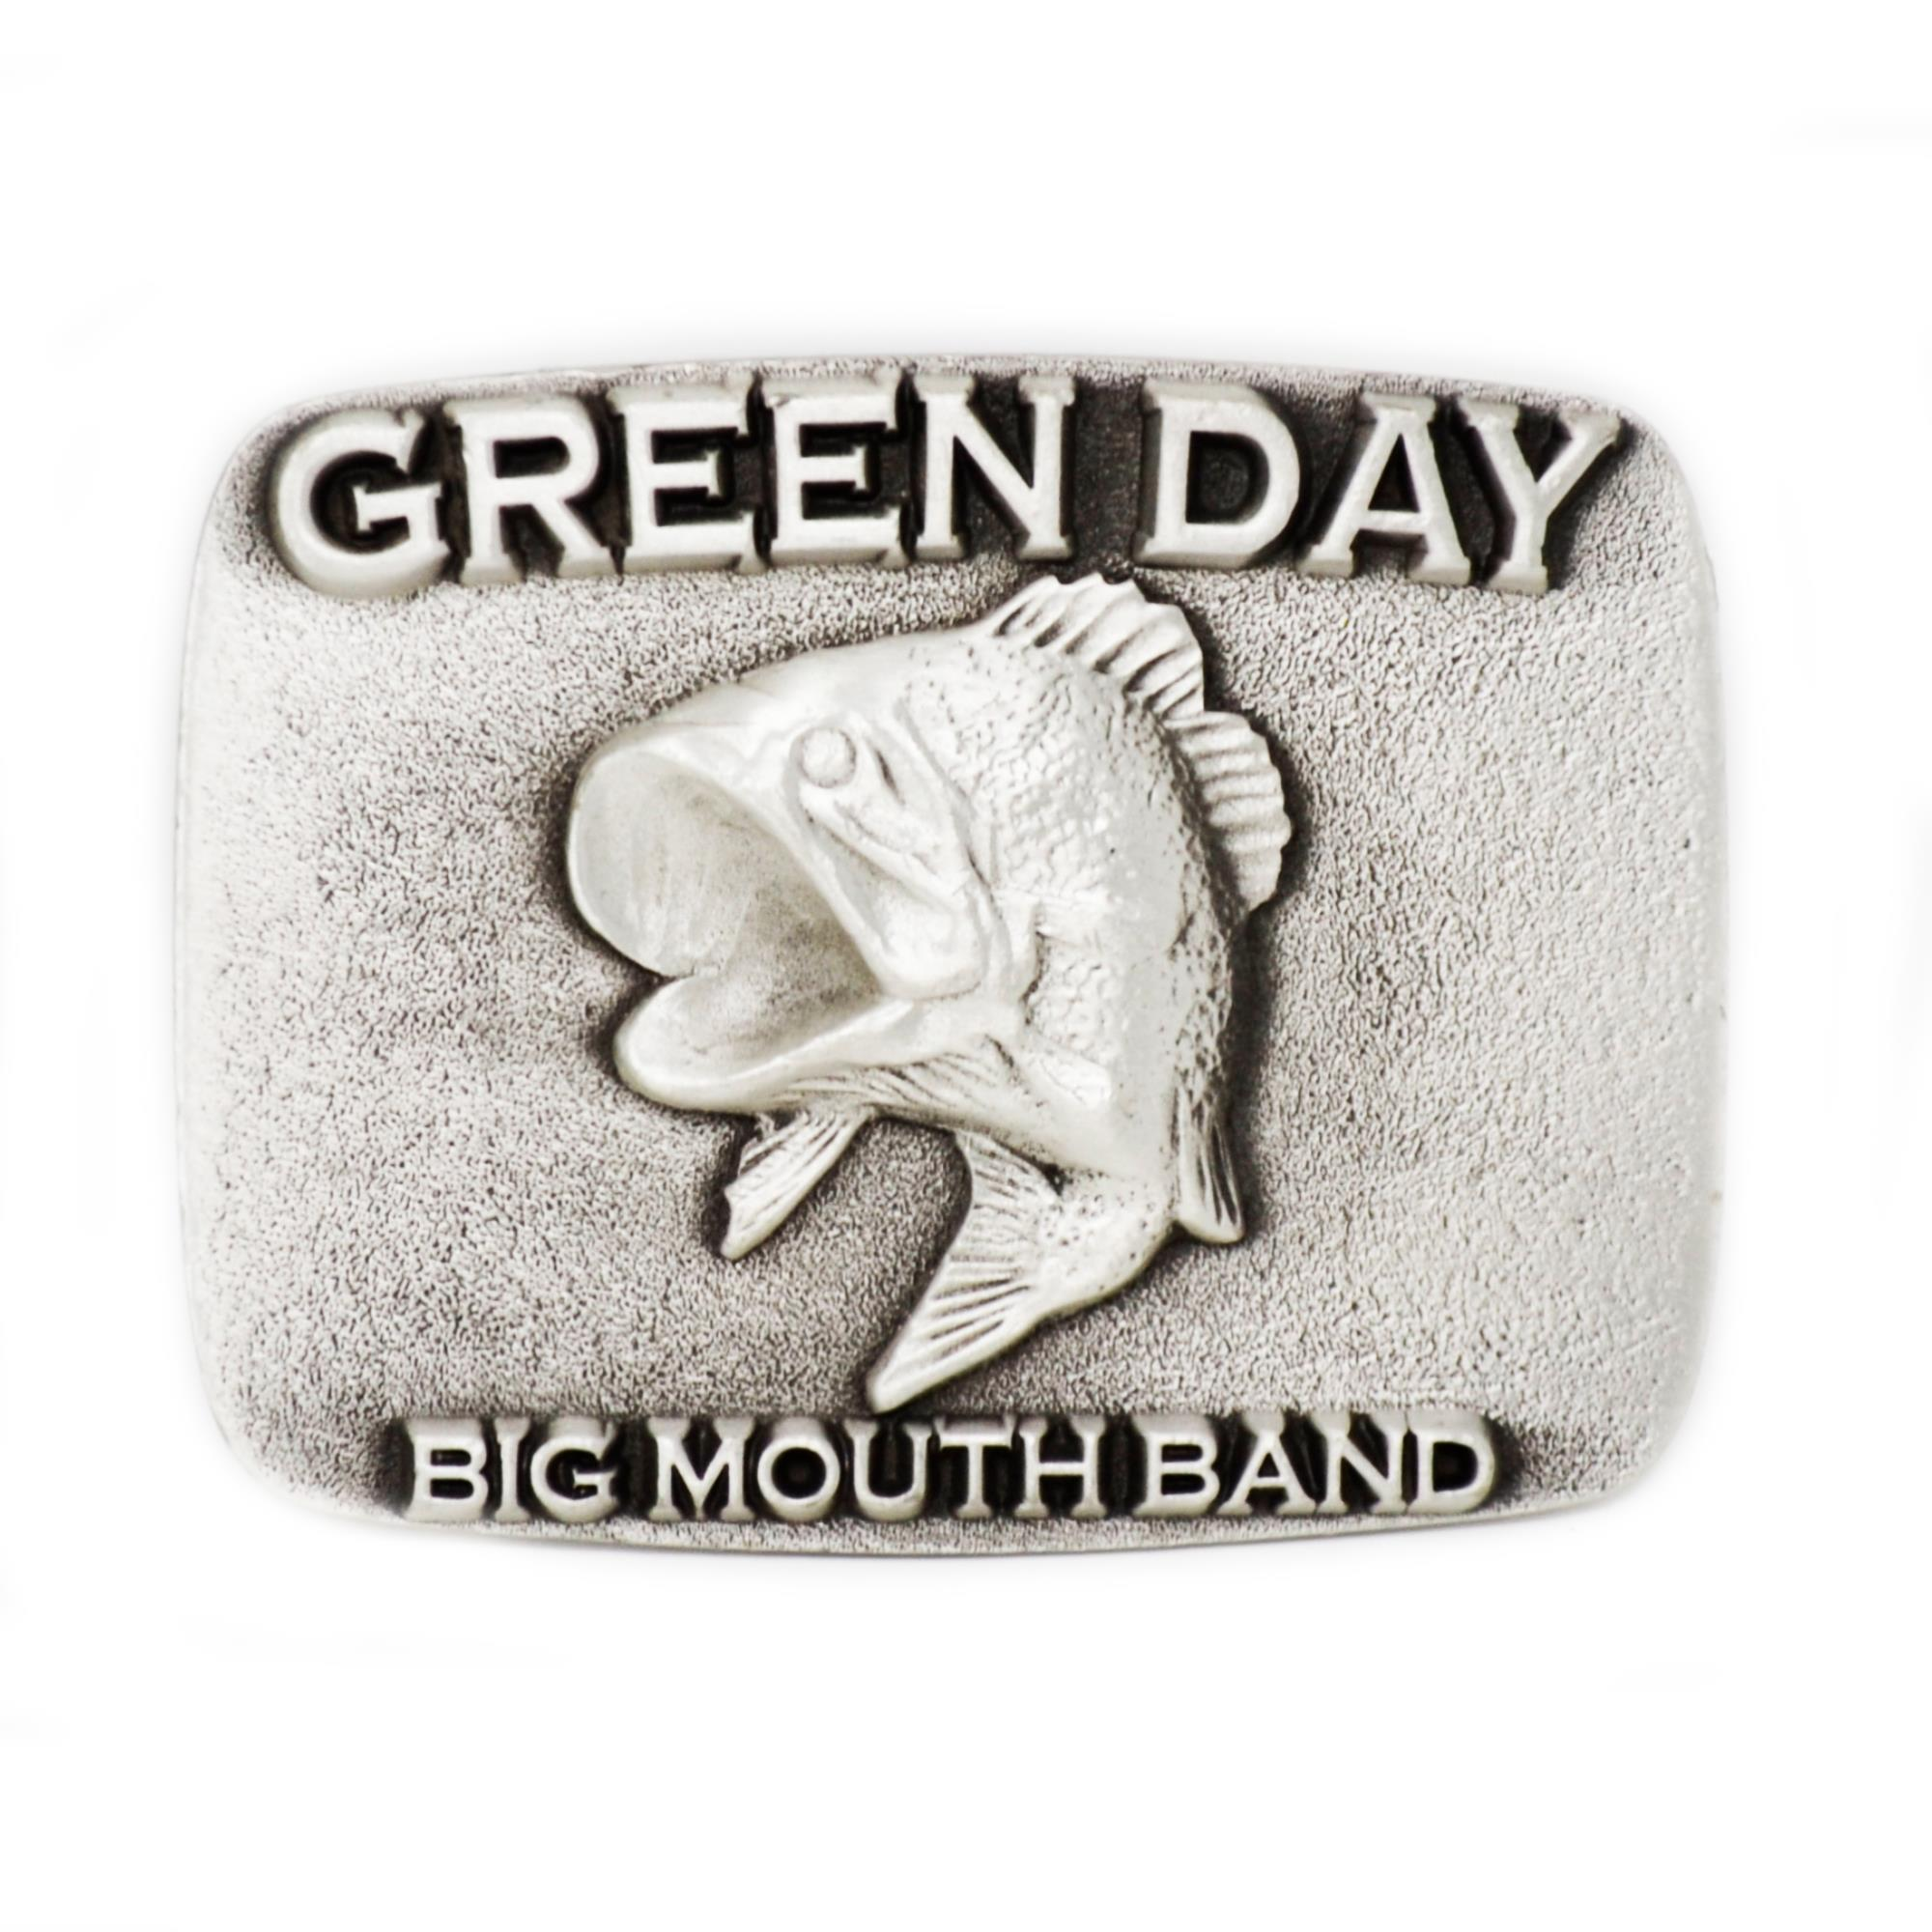 Big Mouth Band Buckle